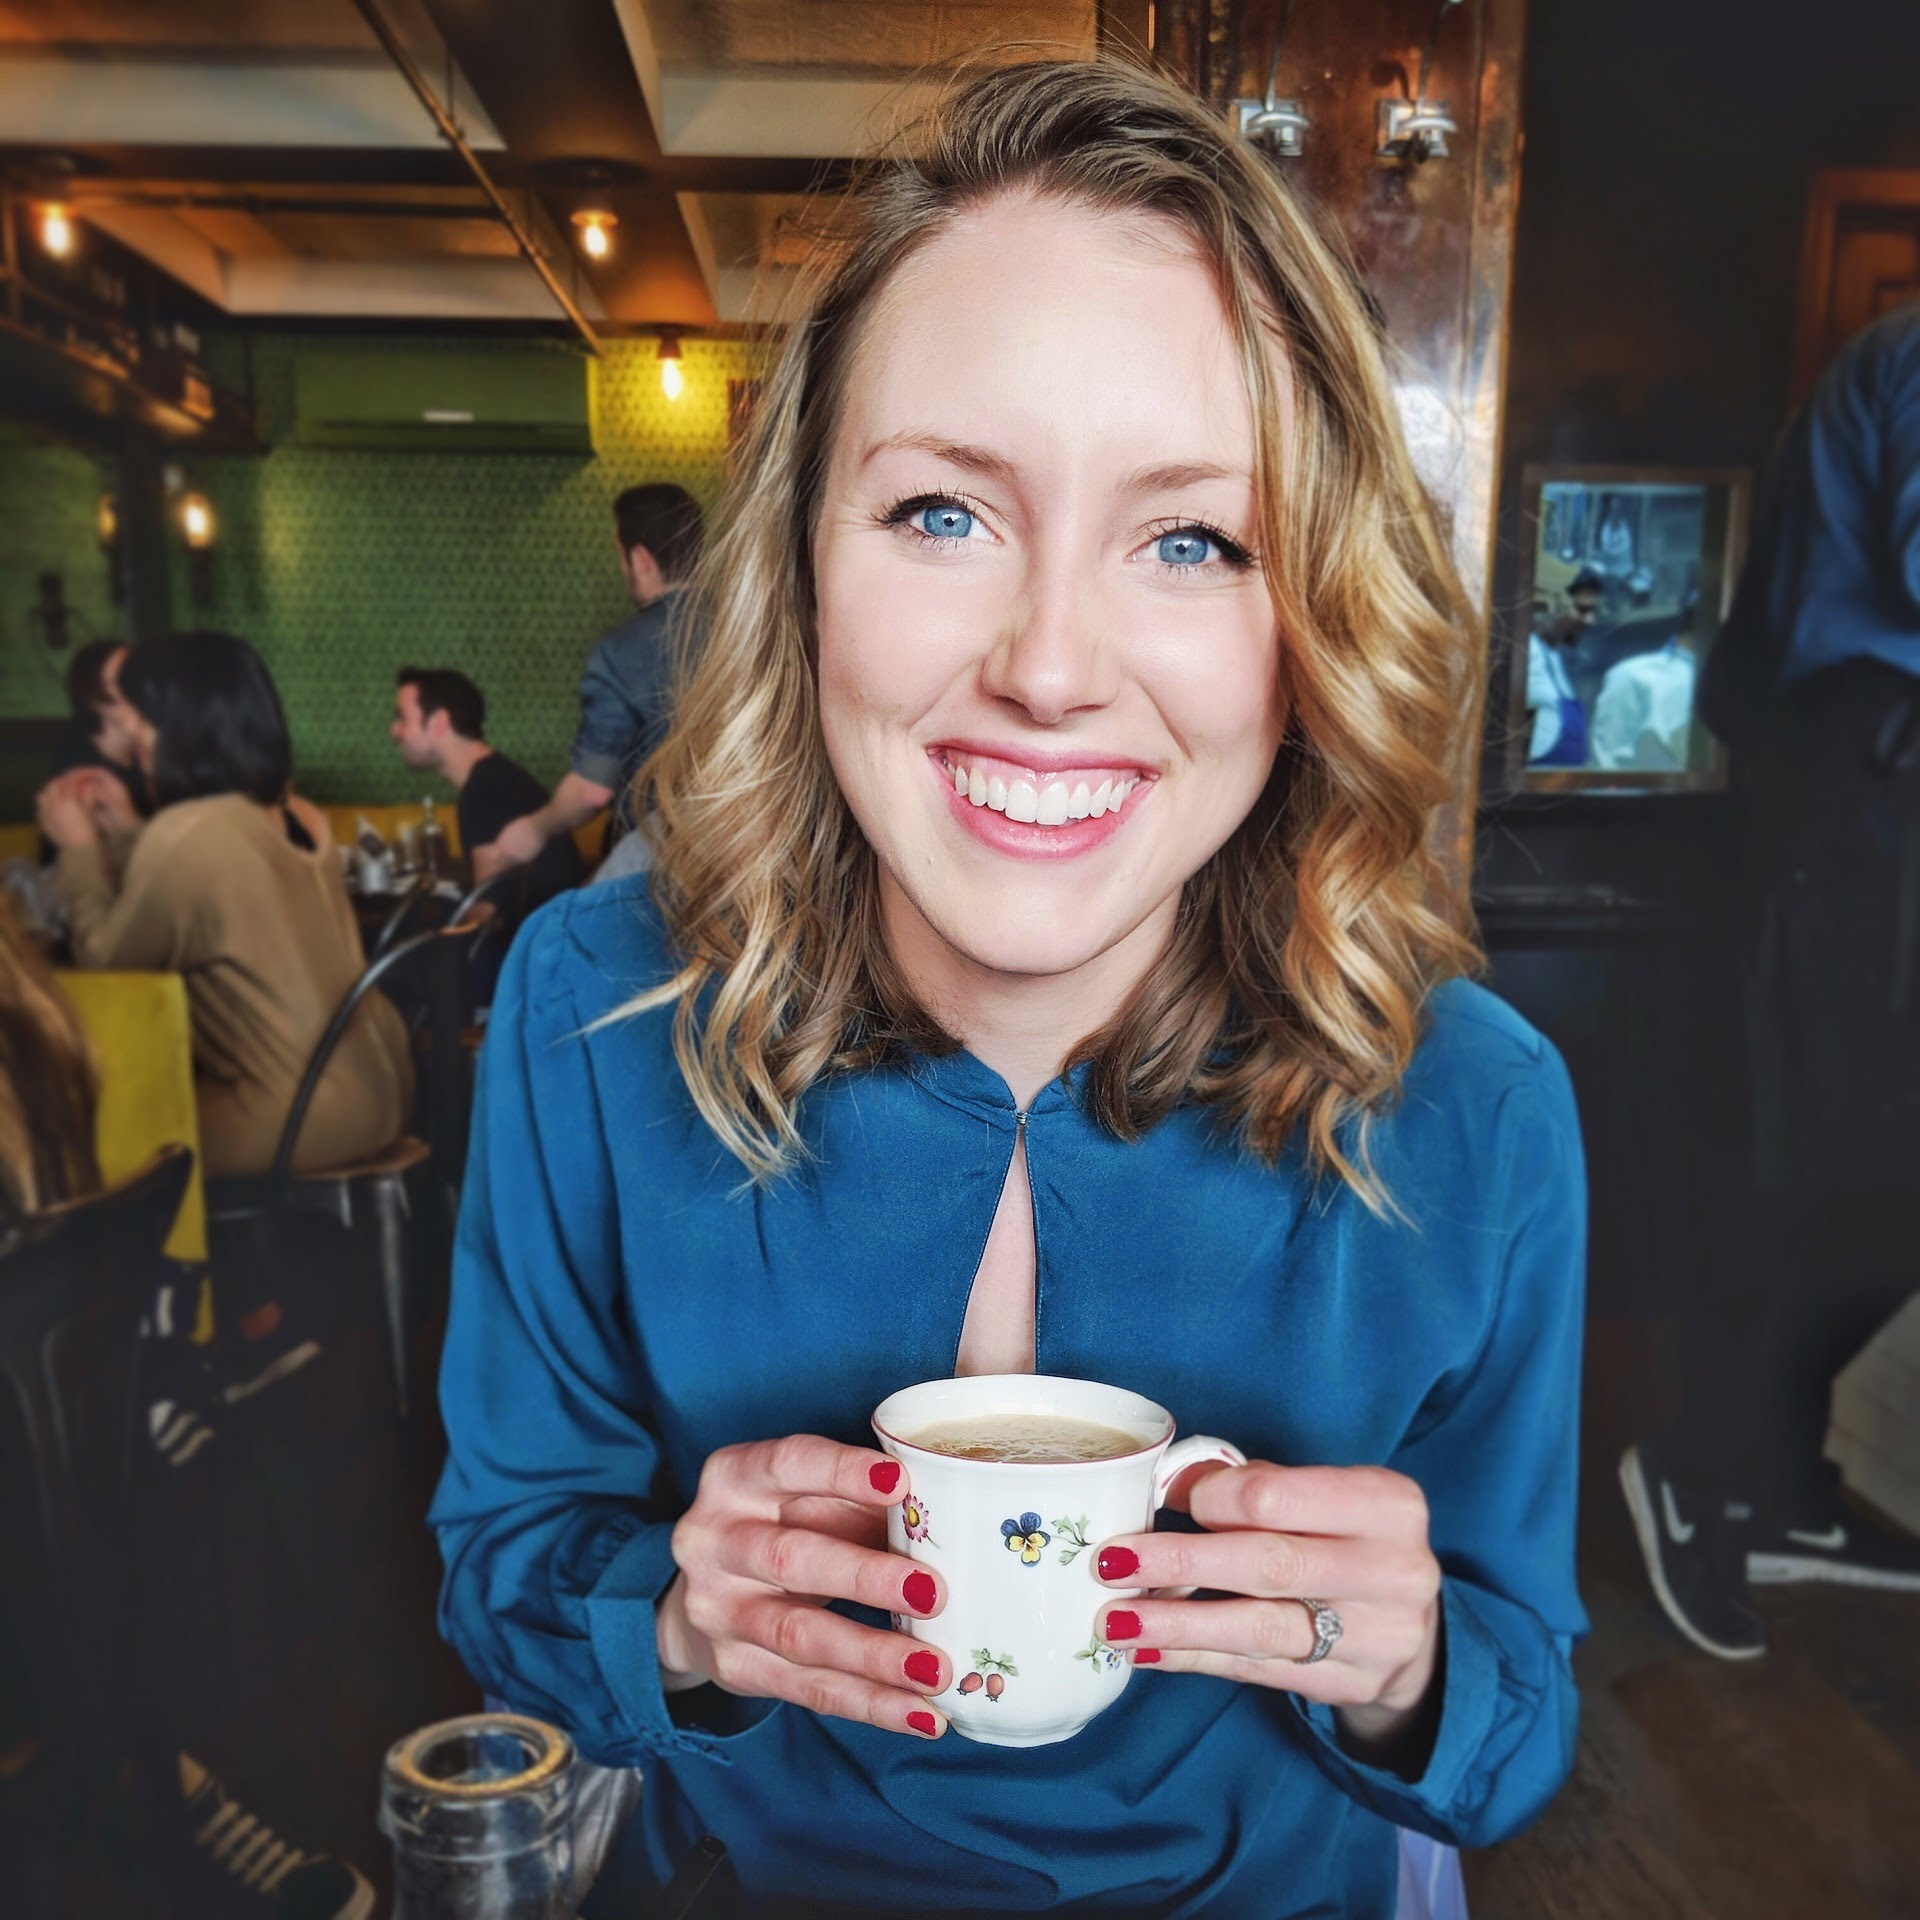 5 Food Lessons A European Adventure Taught This Southern Gal | Cheers Years Blog #paris #cafe